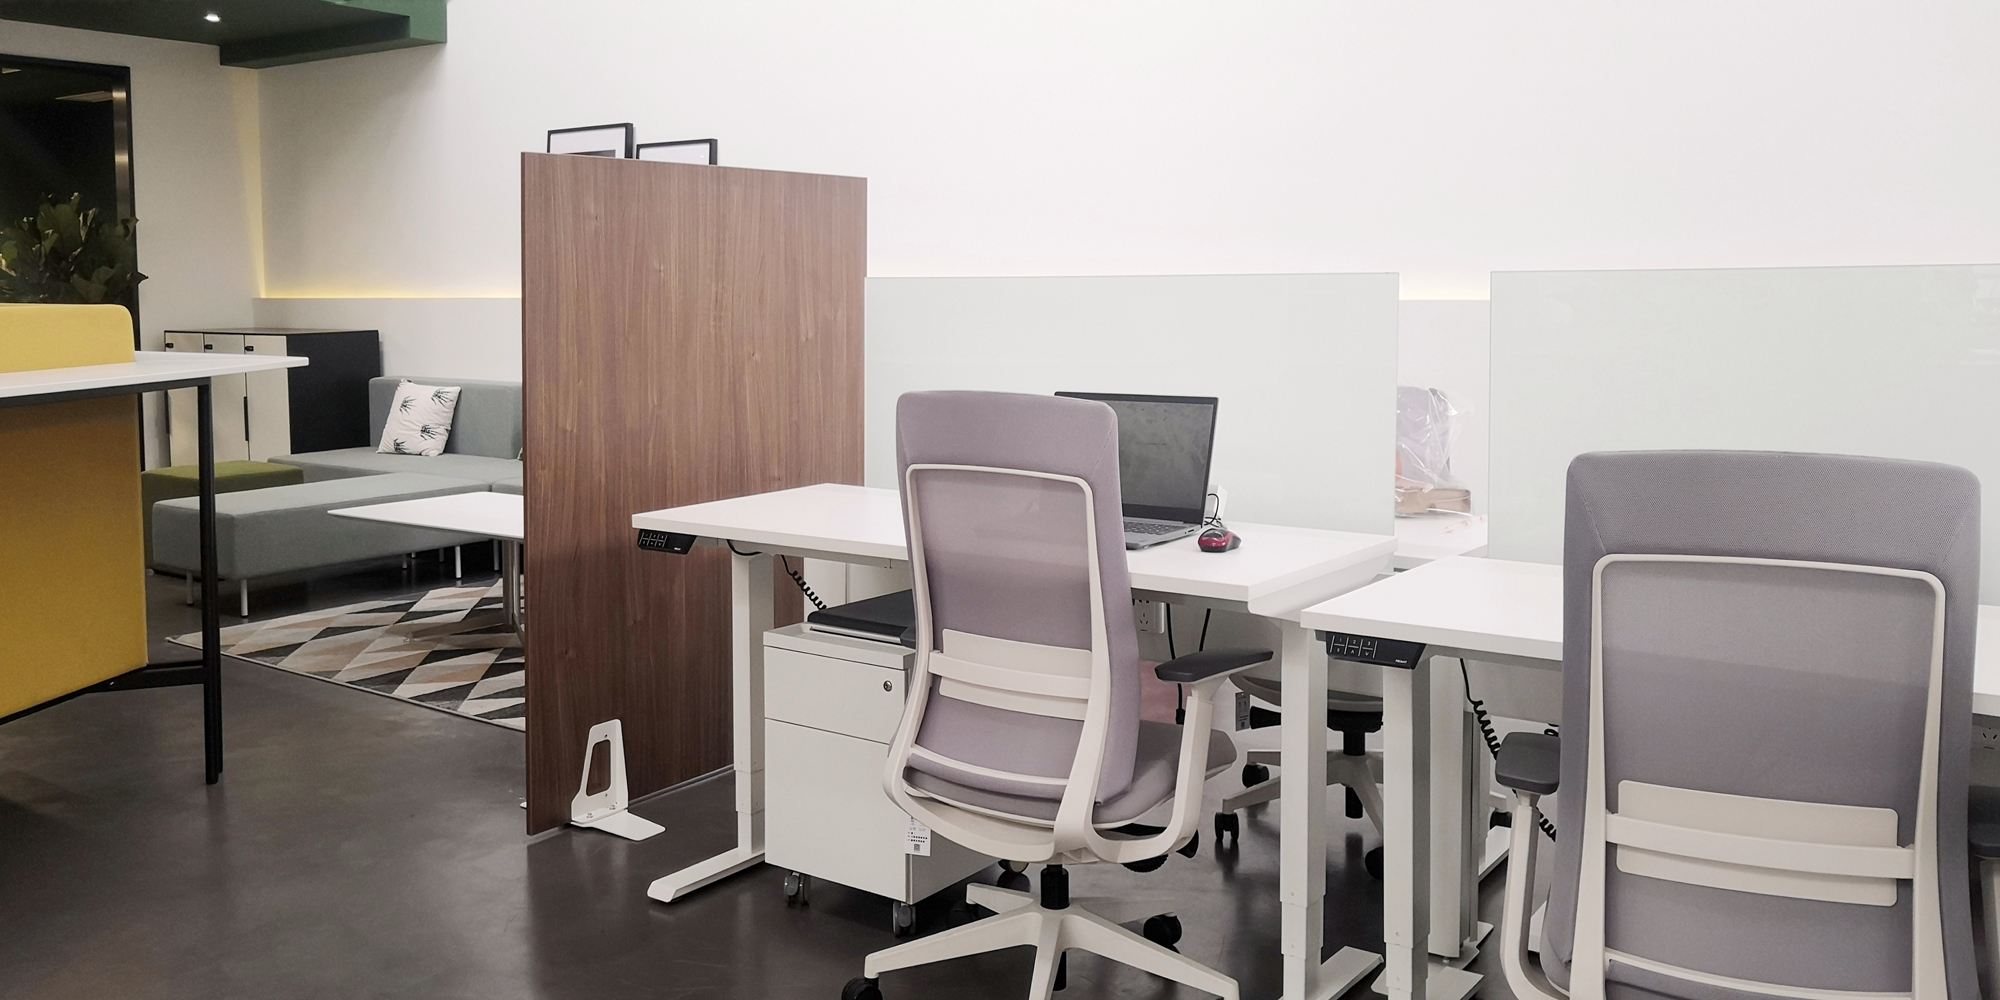 Image showcases Friant Shield panel next to a workstation